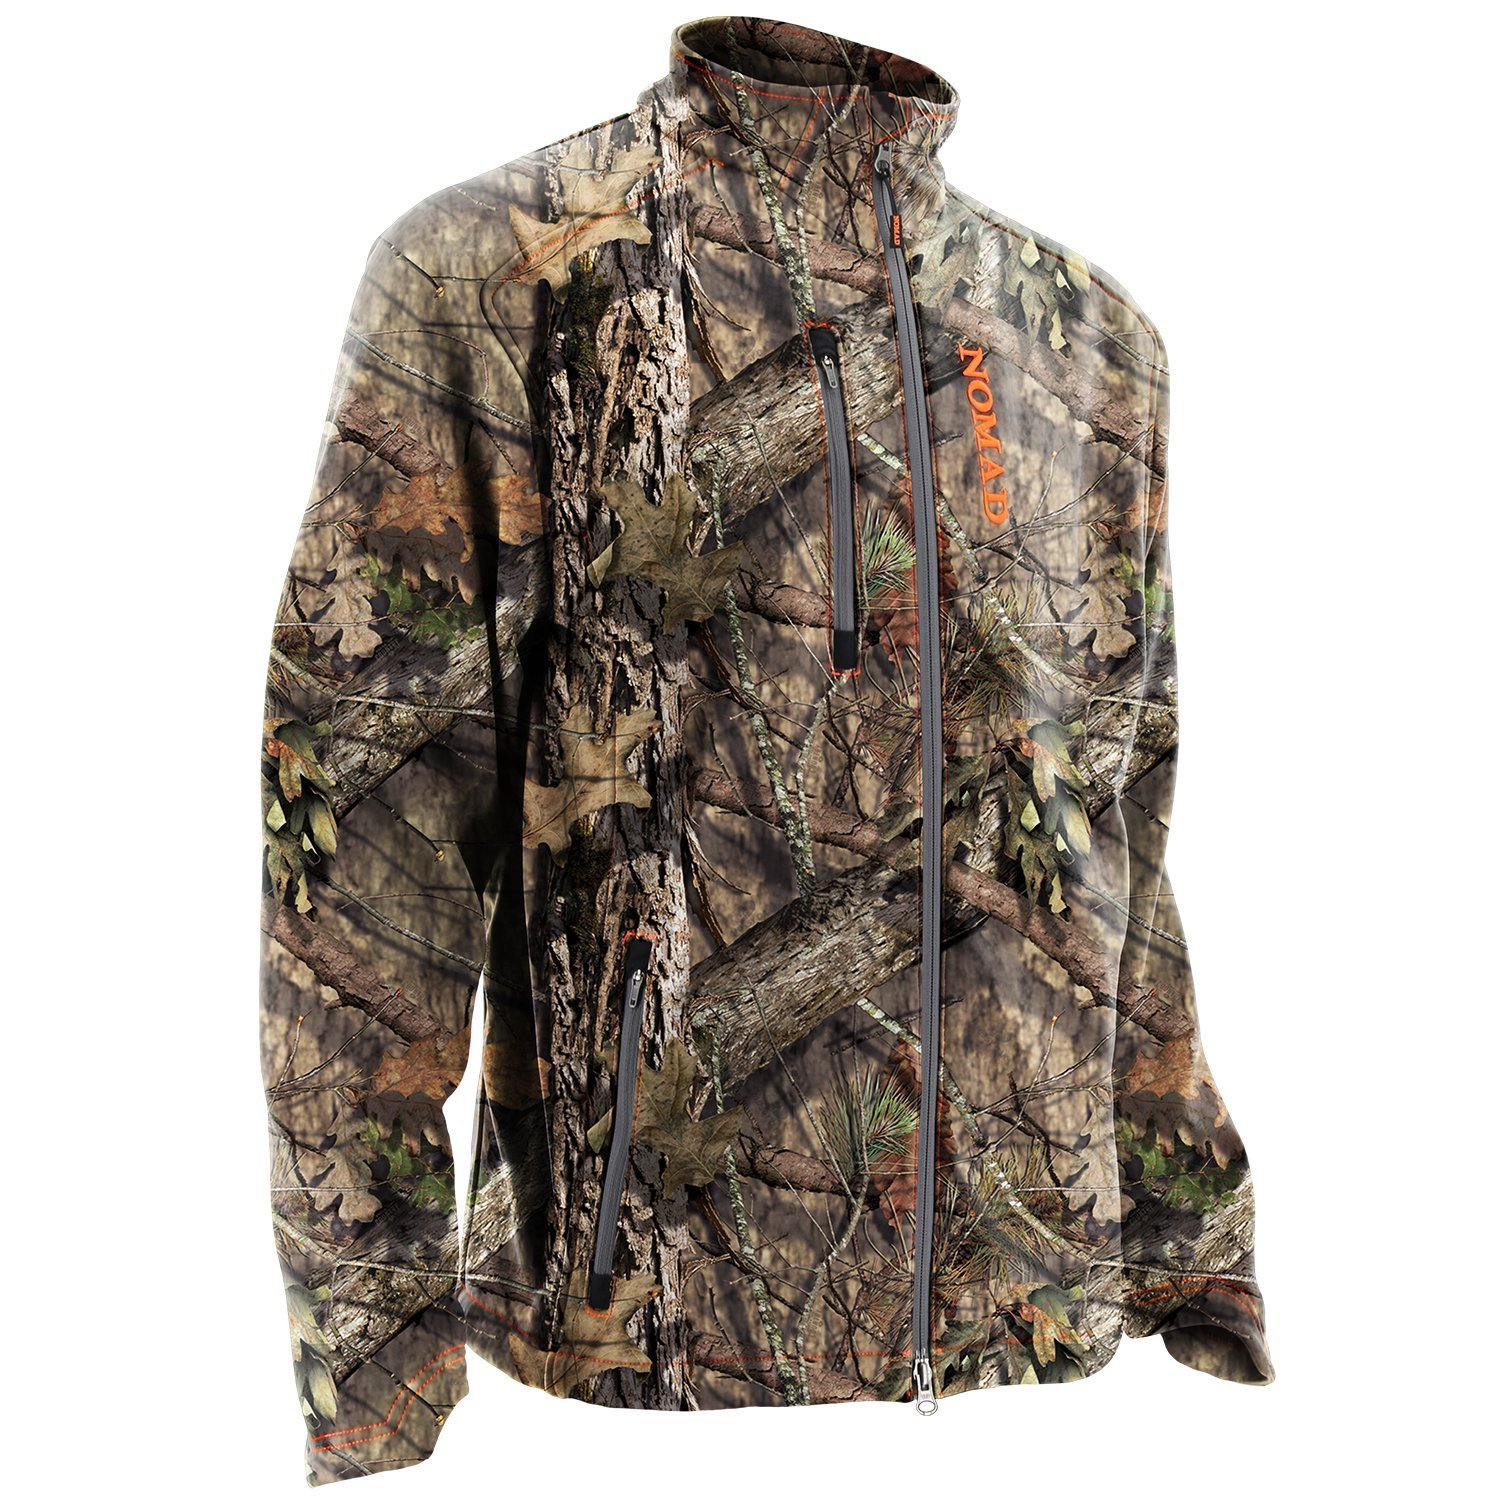 Nomad Mergence Scent Control Jacket - Mossy Oak Break-UP Country - Size 3X Large